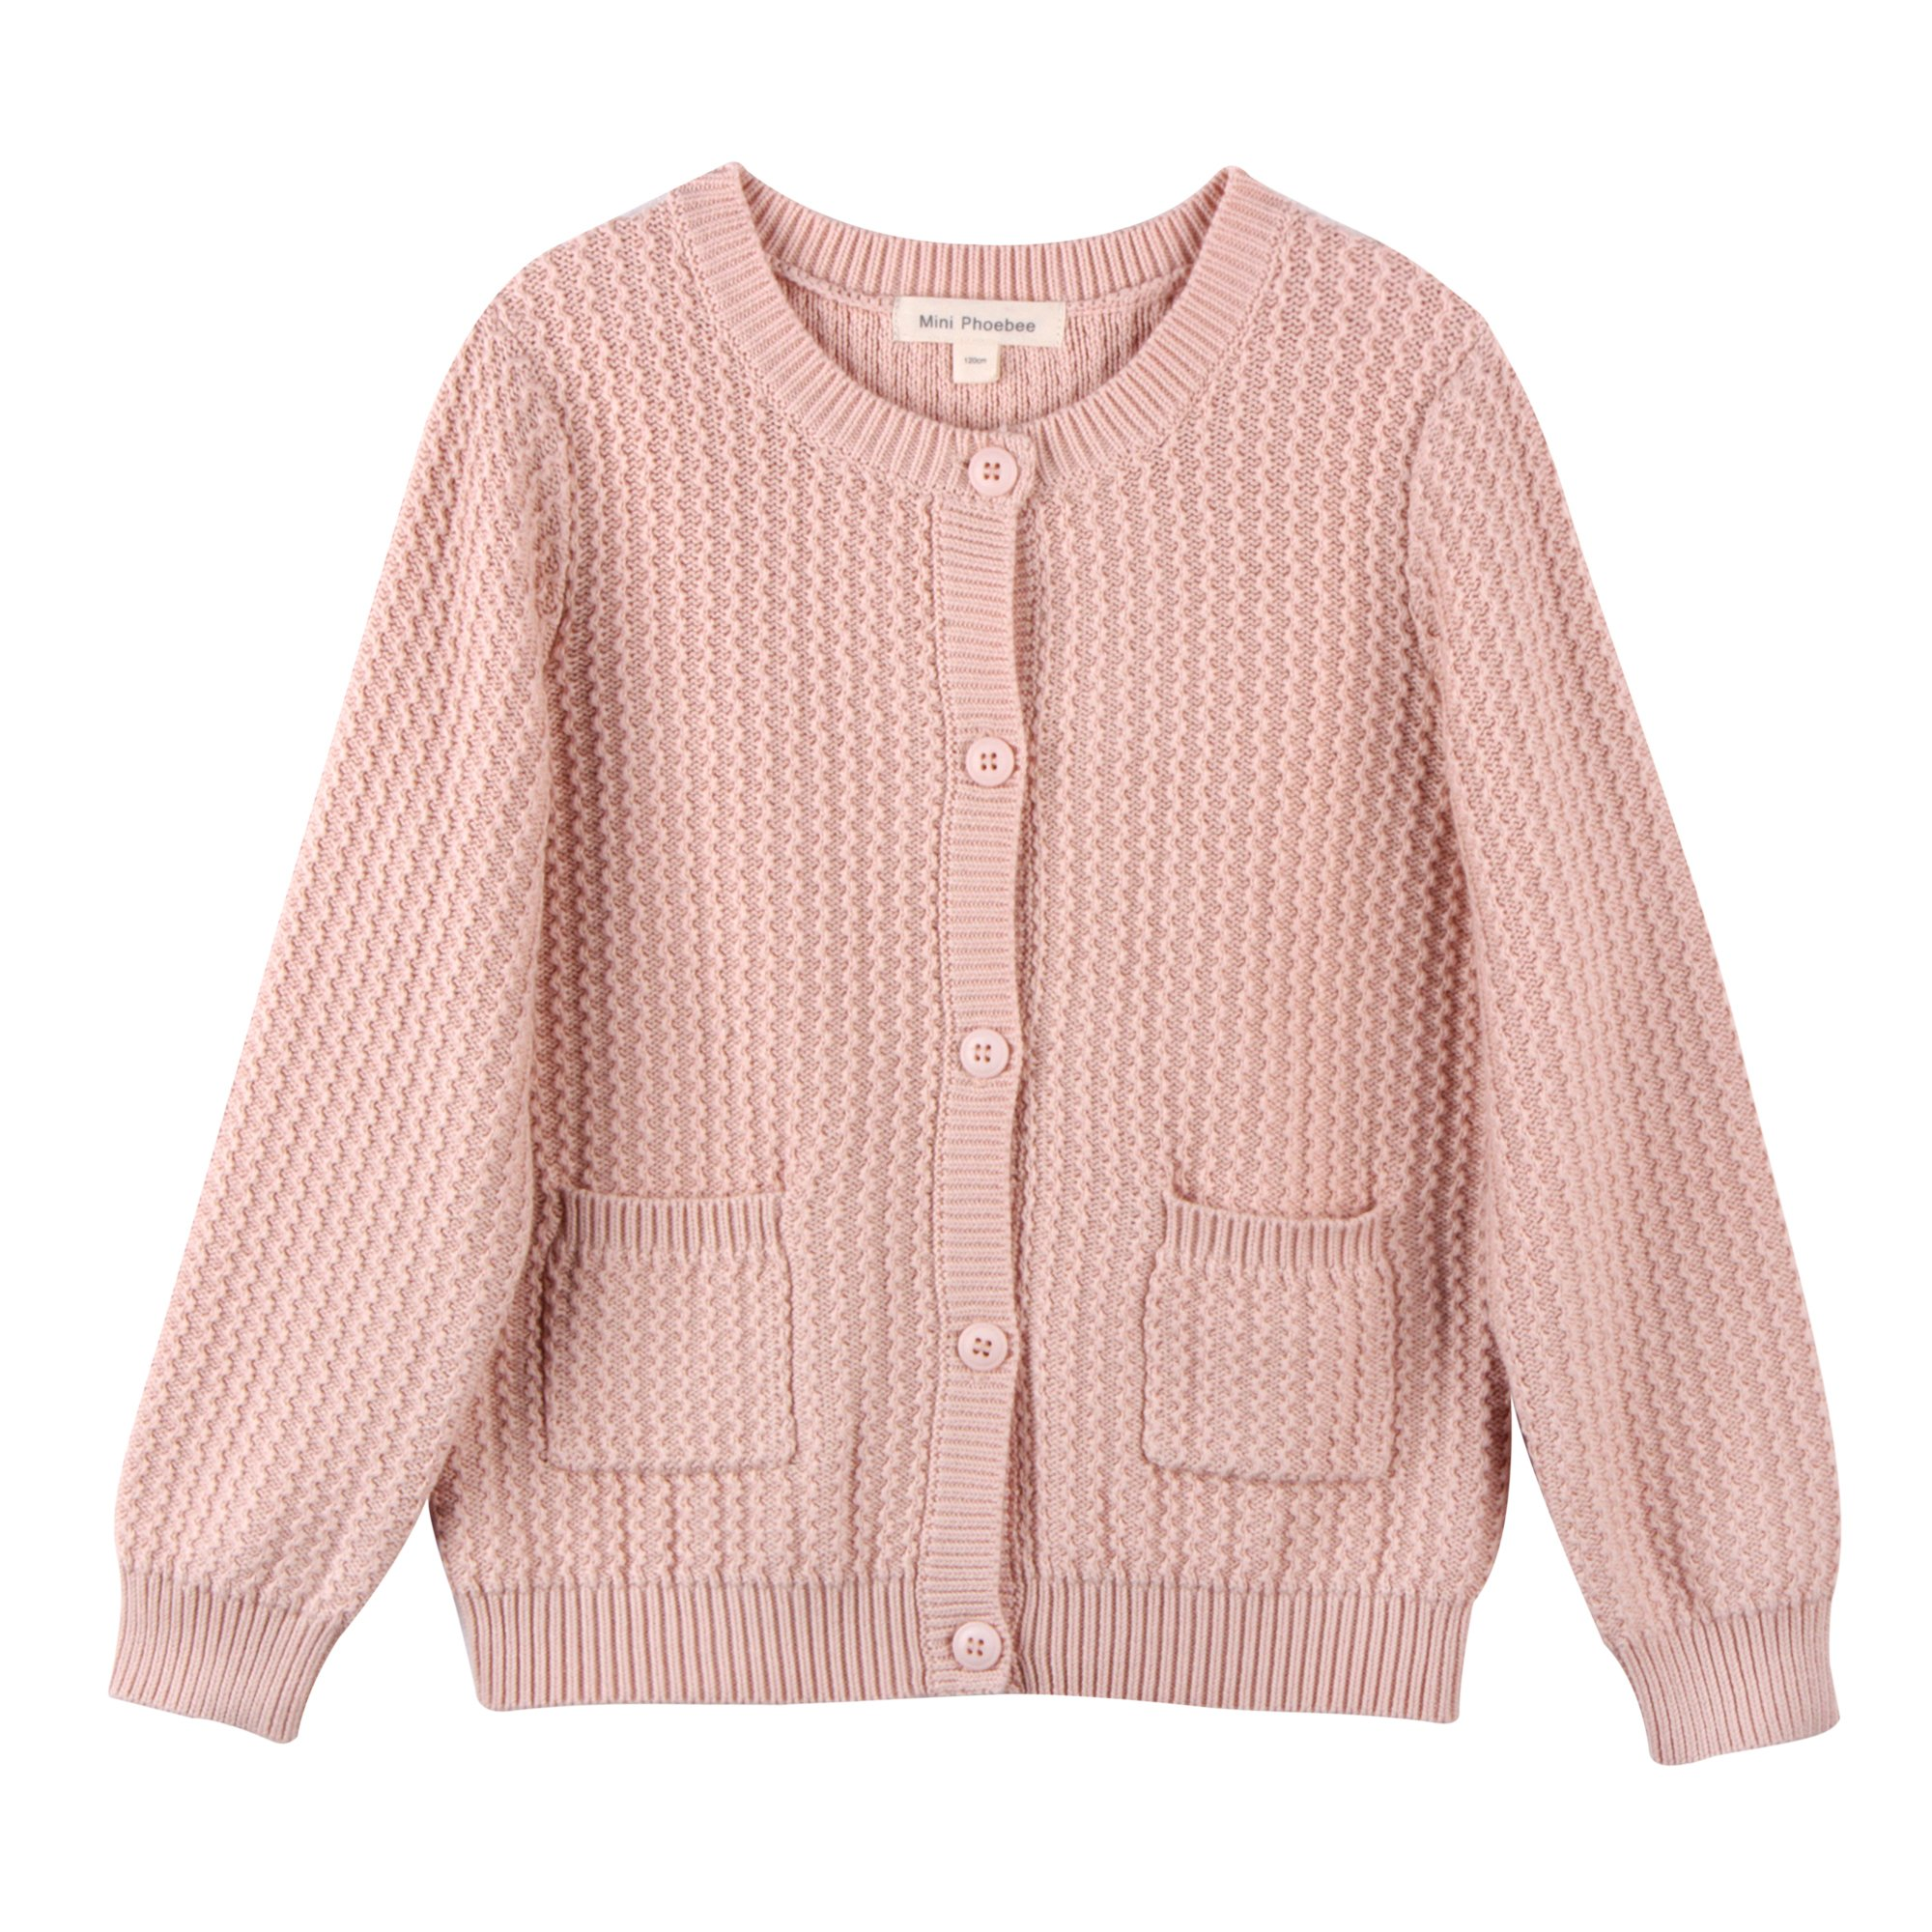 Mini Phoebee Little Girls' Long Sleeve Crew Neck Twisted Texture Cardigan Sweater 3T Pink